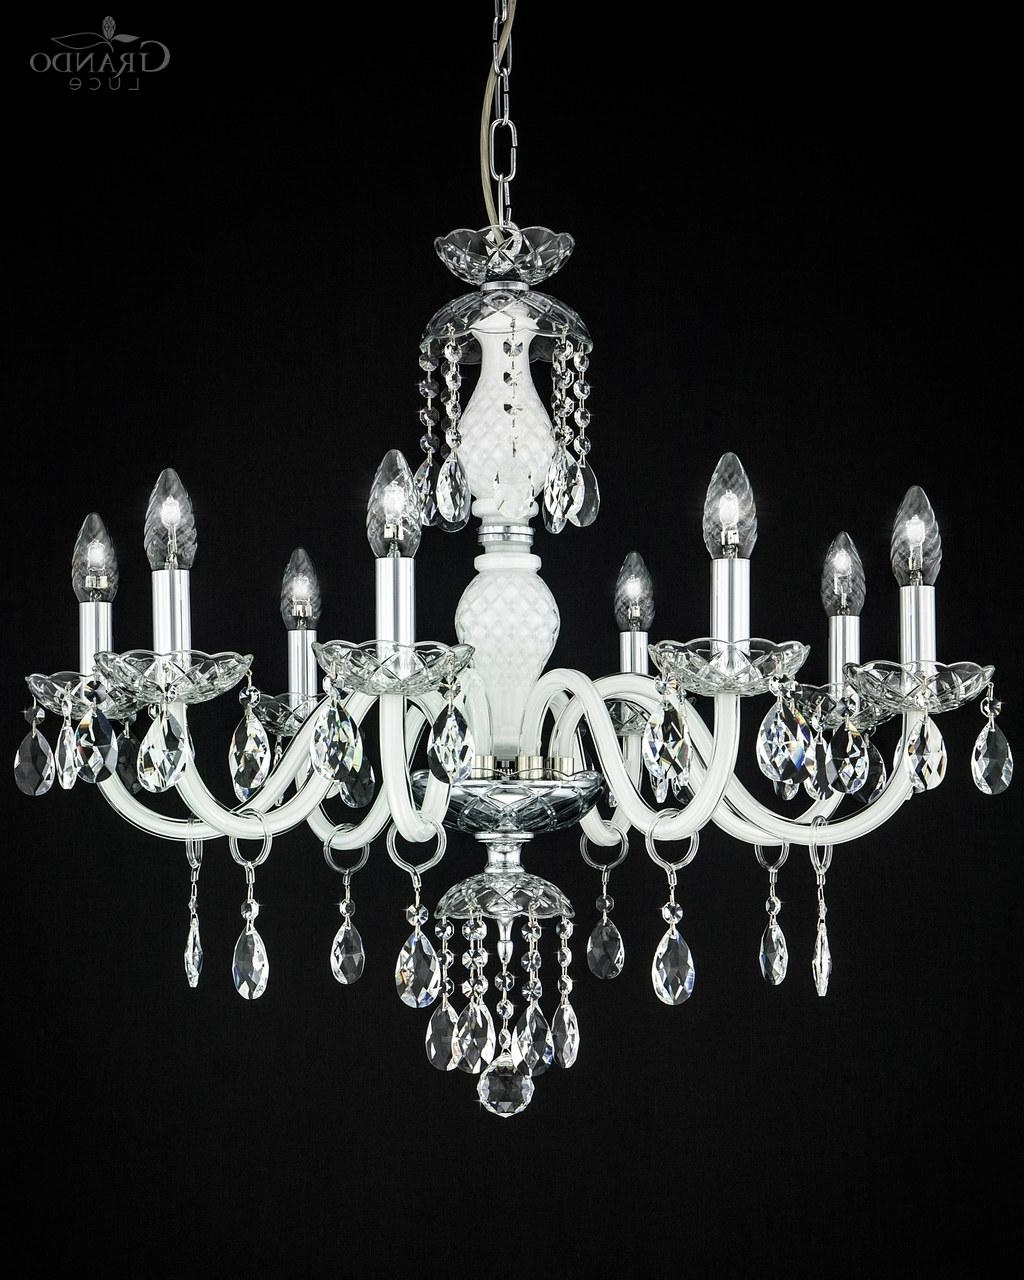 Well Known White And Crystal Chandeliers With Regard To 104/ch 8 Chrome White Crystal Chandelier With Swrovski Spectra (View 14 of 20)